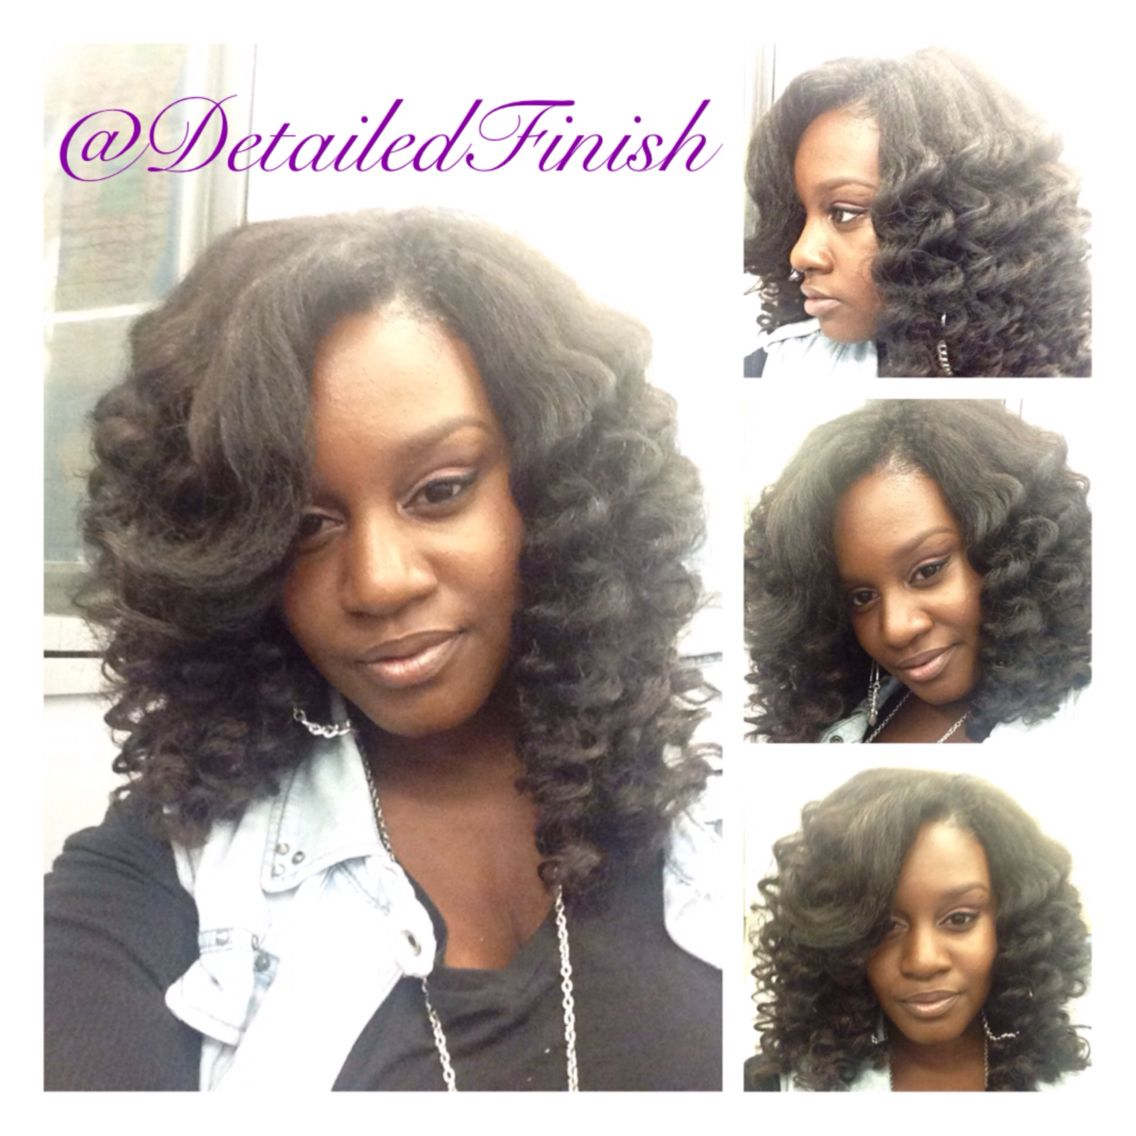 Outstanding Freetress Water Wave Detailedfinish Crochet Weave Crochet Hairstyle Inspiration Daily Dogsangcom